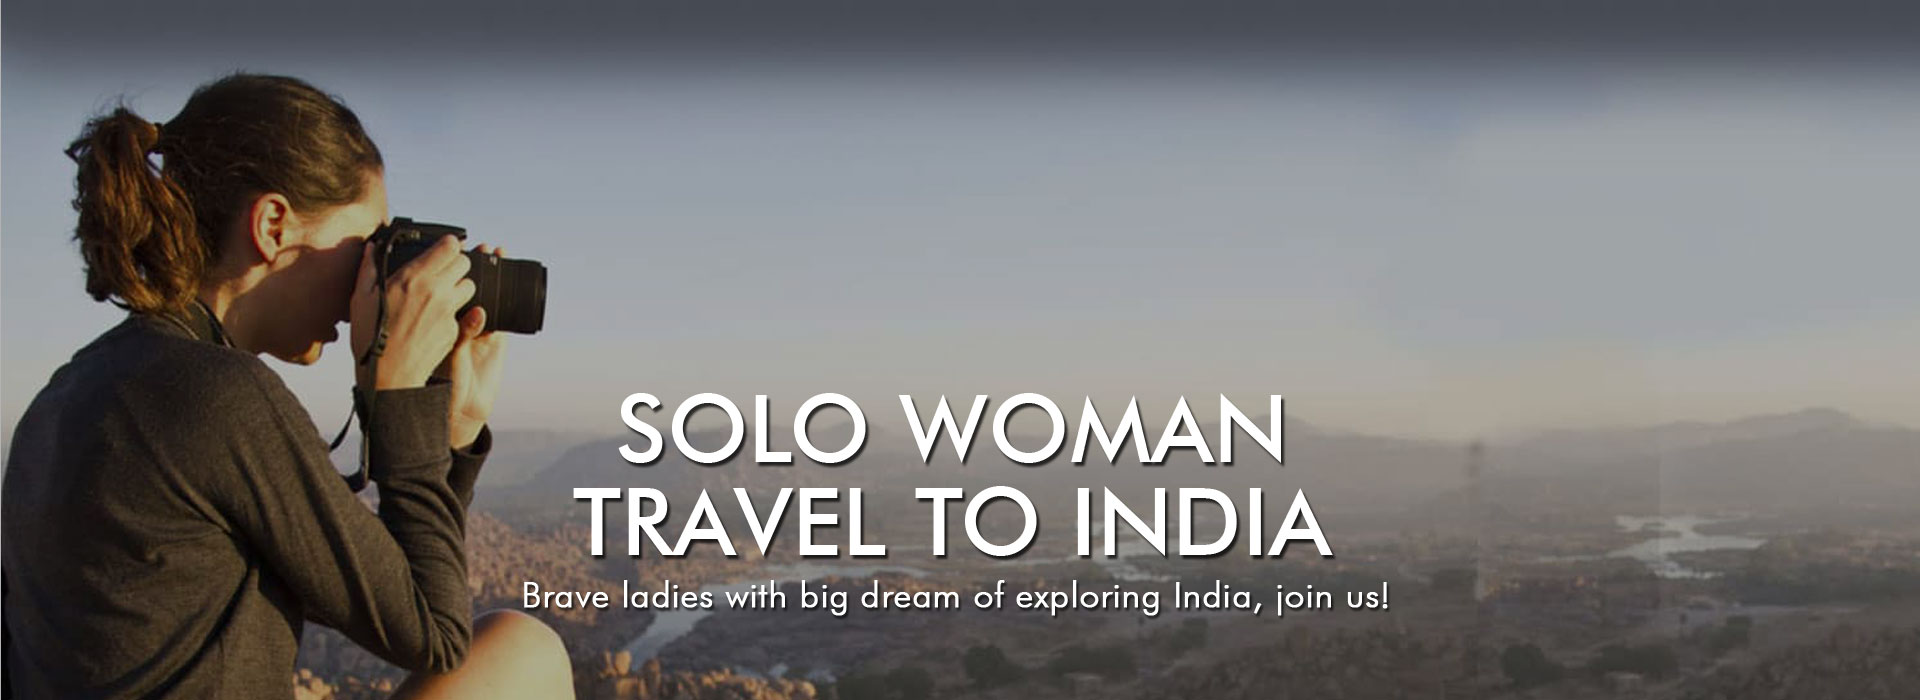 Best Solo Travel Packages India for women